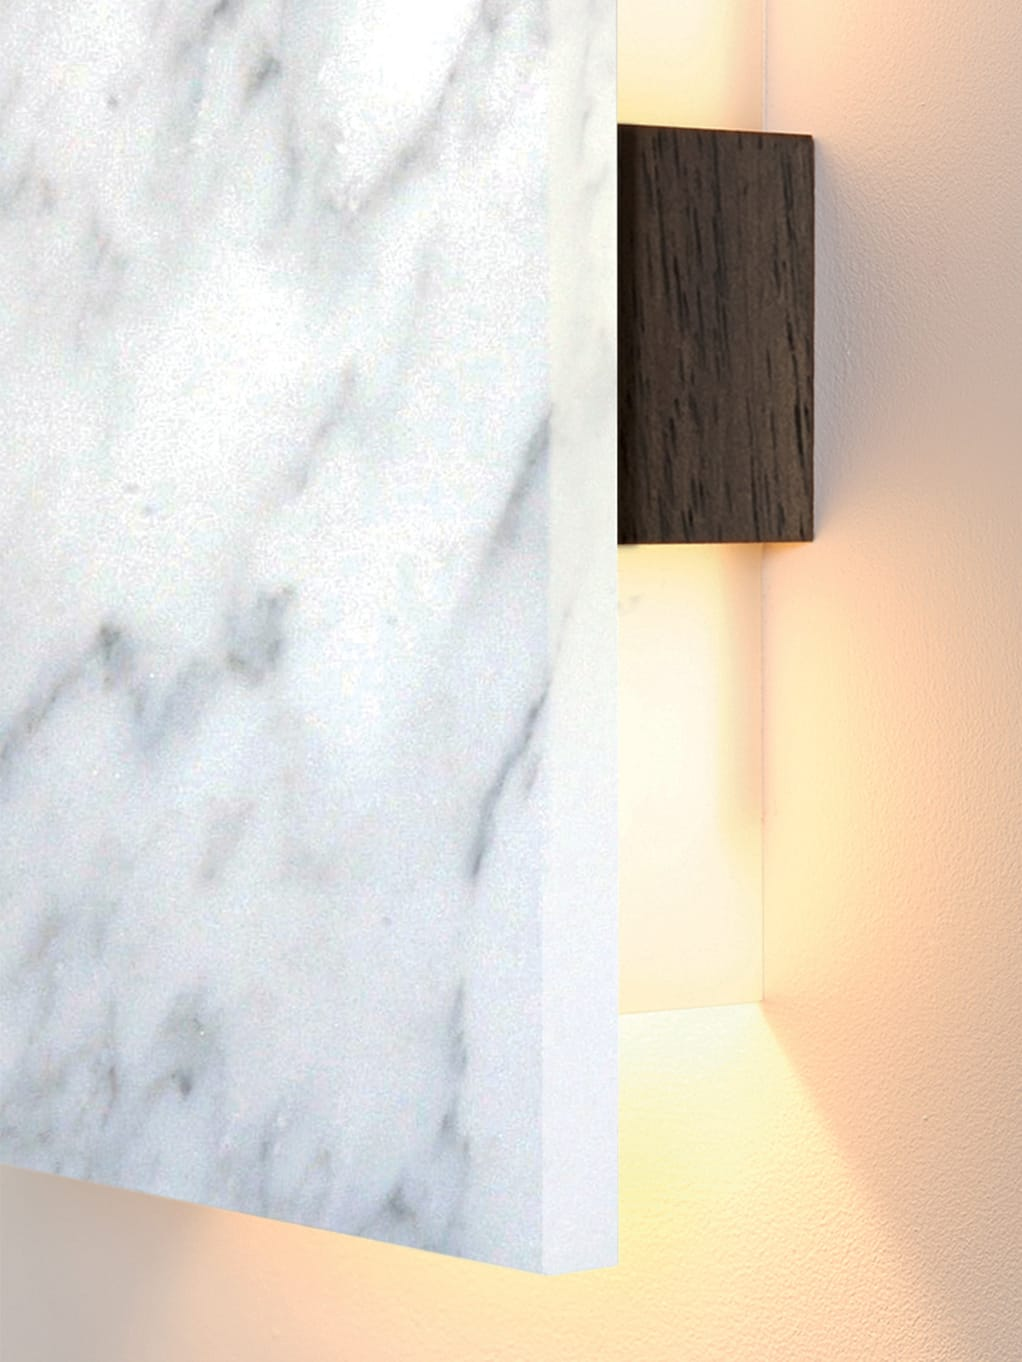 A close-up view of Cerno's Tersus LED Wall Sconce in Carrara Marble and Walnut.